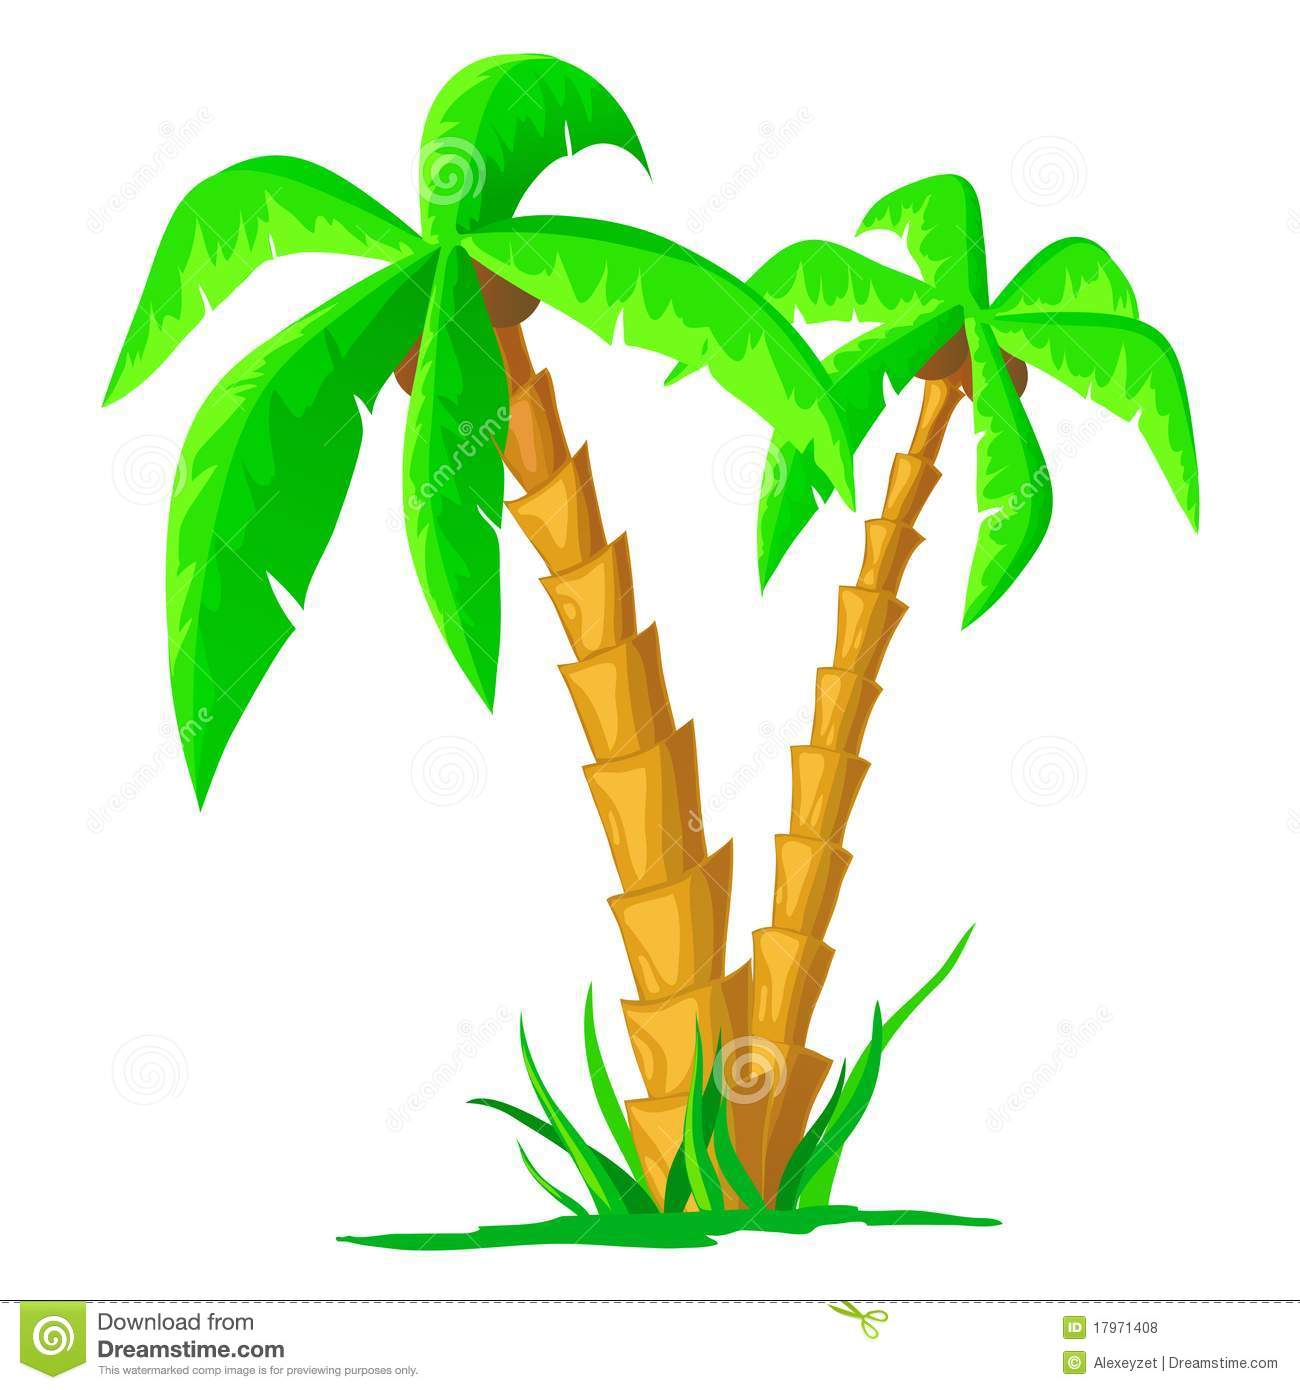 cartoon tropical palm isolated on white background stock vector illustration of leaves clip art palm tree public domain clipart palm tree lizard